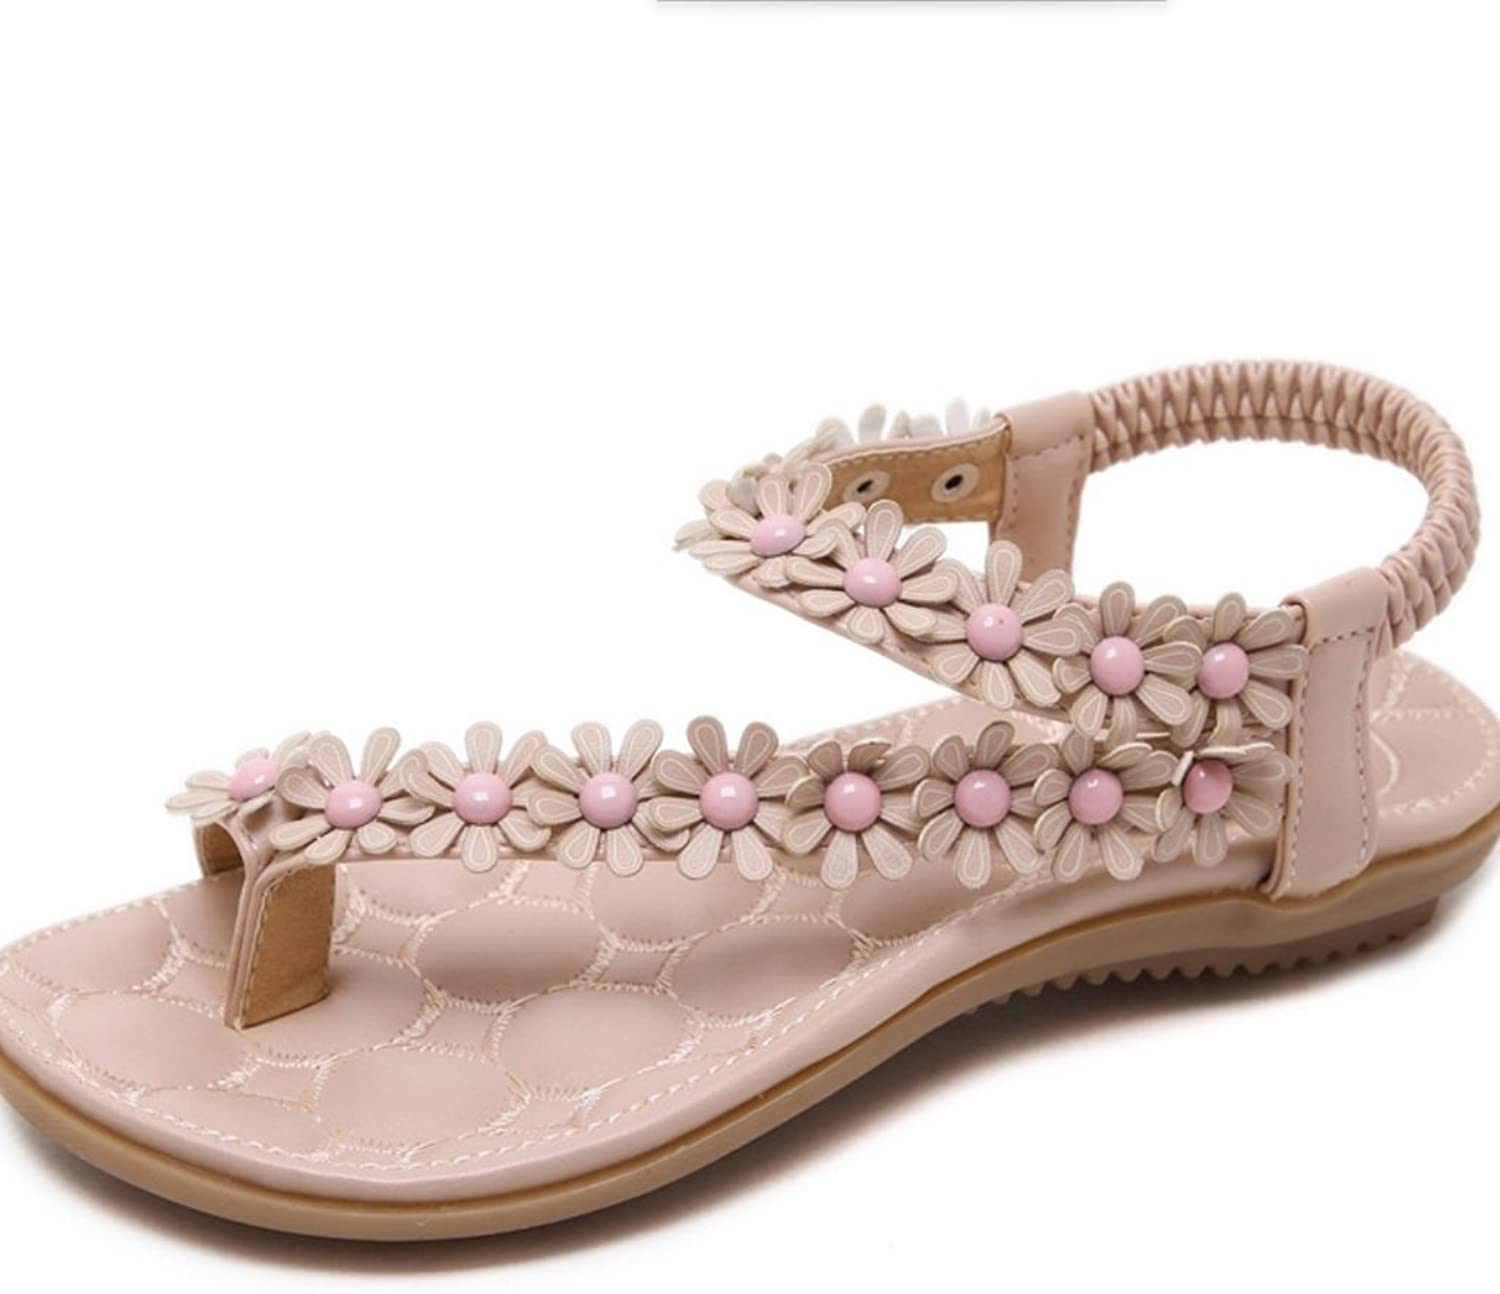 Women's New Summer Bohemian Sandals Sandals Low-Heeled Sandals Flowers Decorative Buckles Low-Heeled shoes XIAOQI